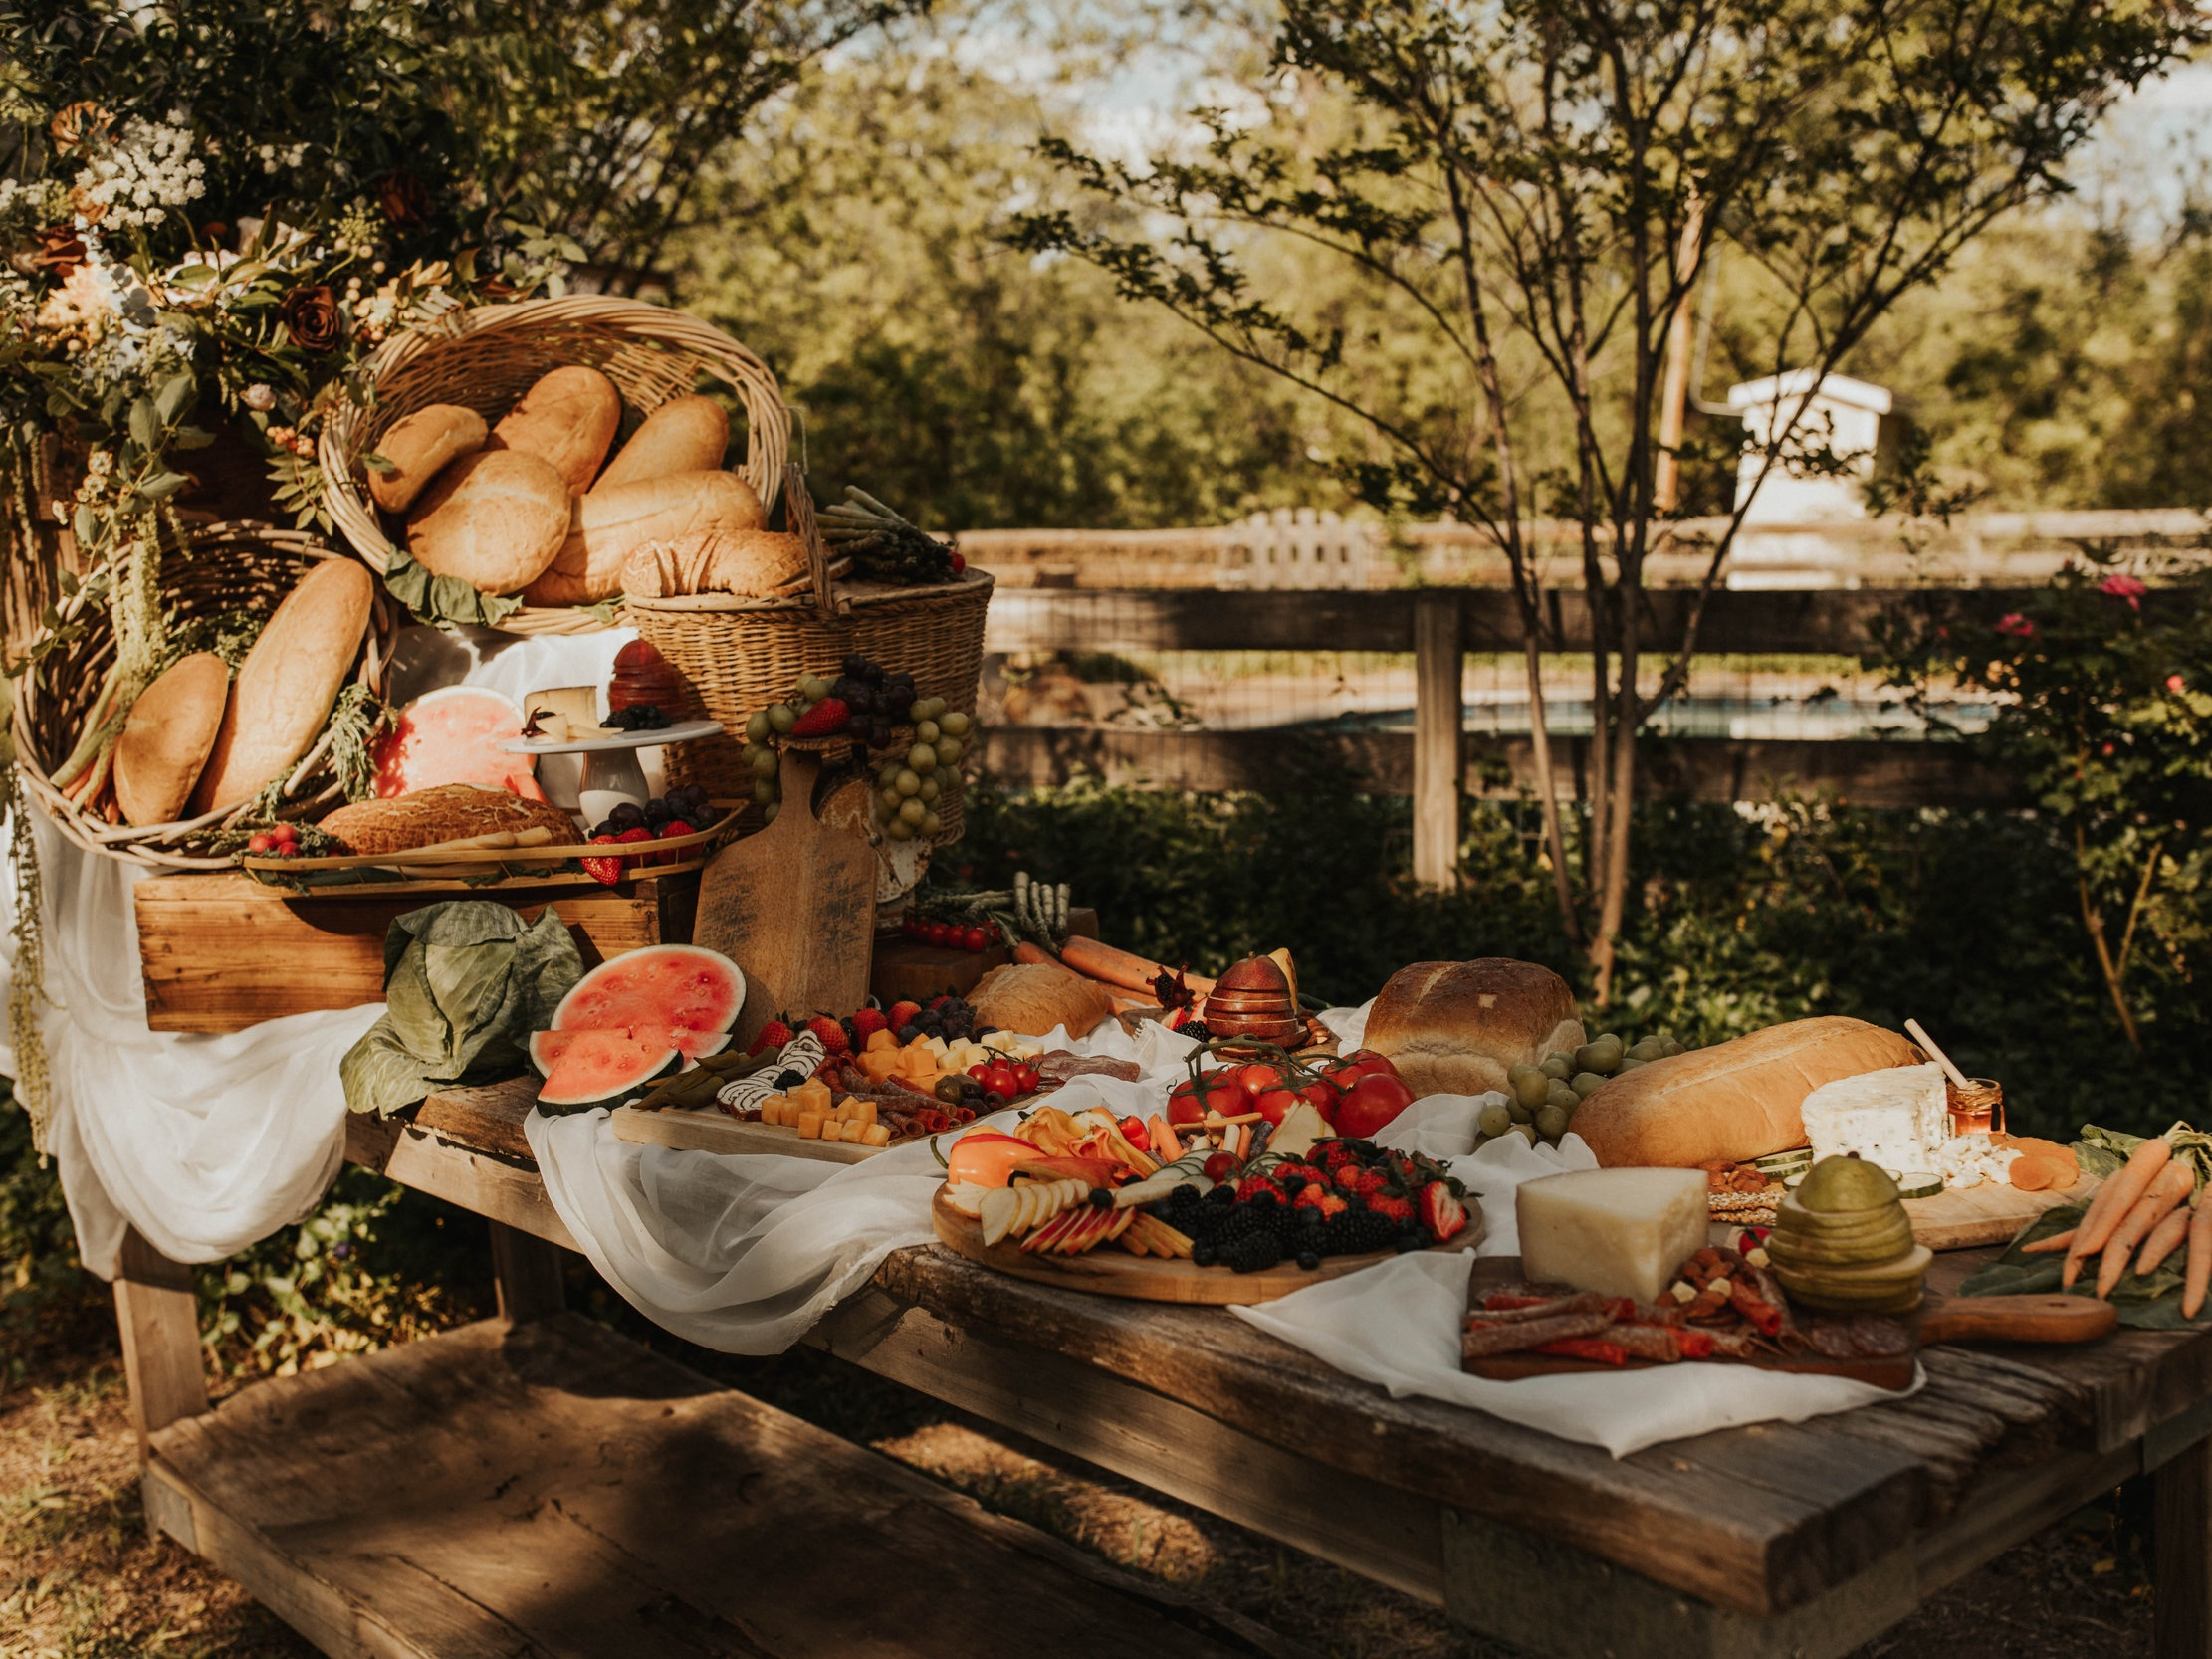 GRAZE ABILENE - Grazing boards, platters and tables made by Abilene's favorite food truck, The Toasted Traveler. Suitable for groups of all sizes, available for pick up, or designed on site.